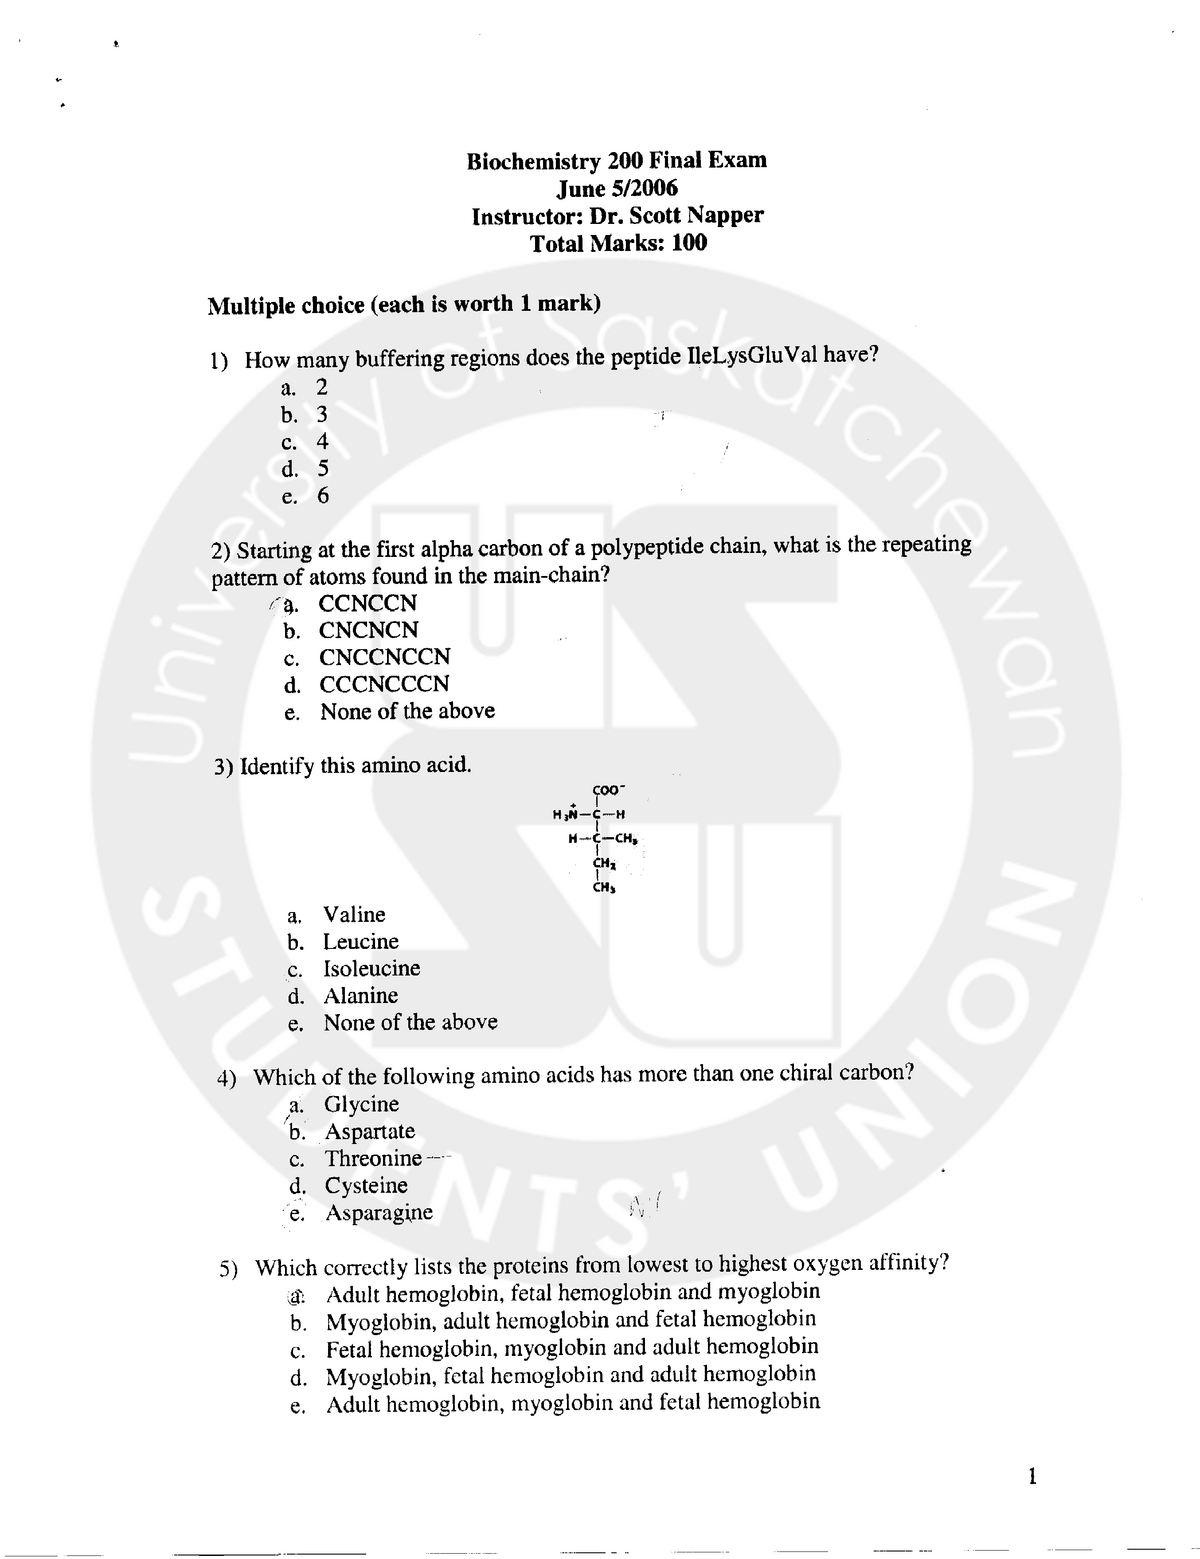 Biomolecules Exam 2006, questions and answers - Bmsc 200 3